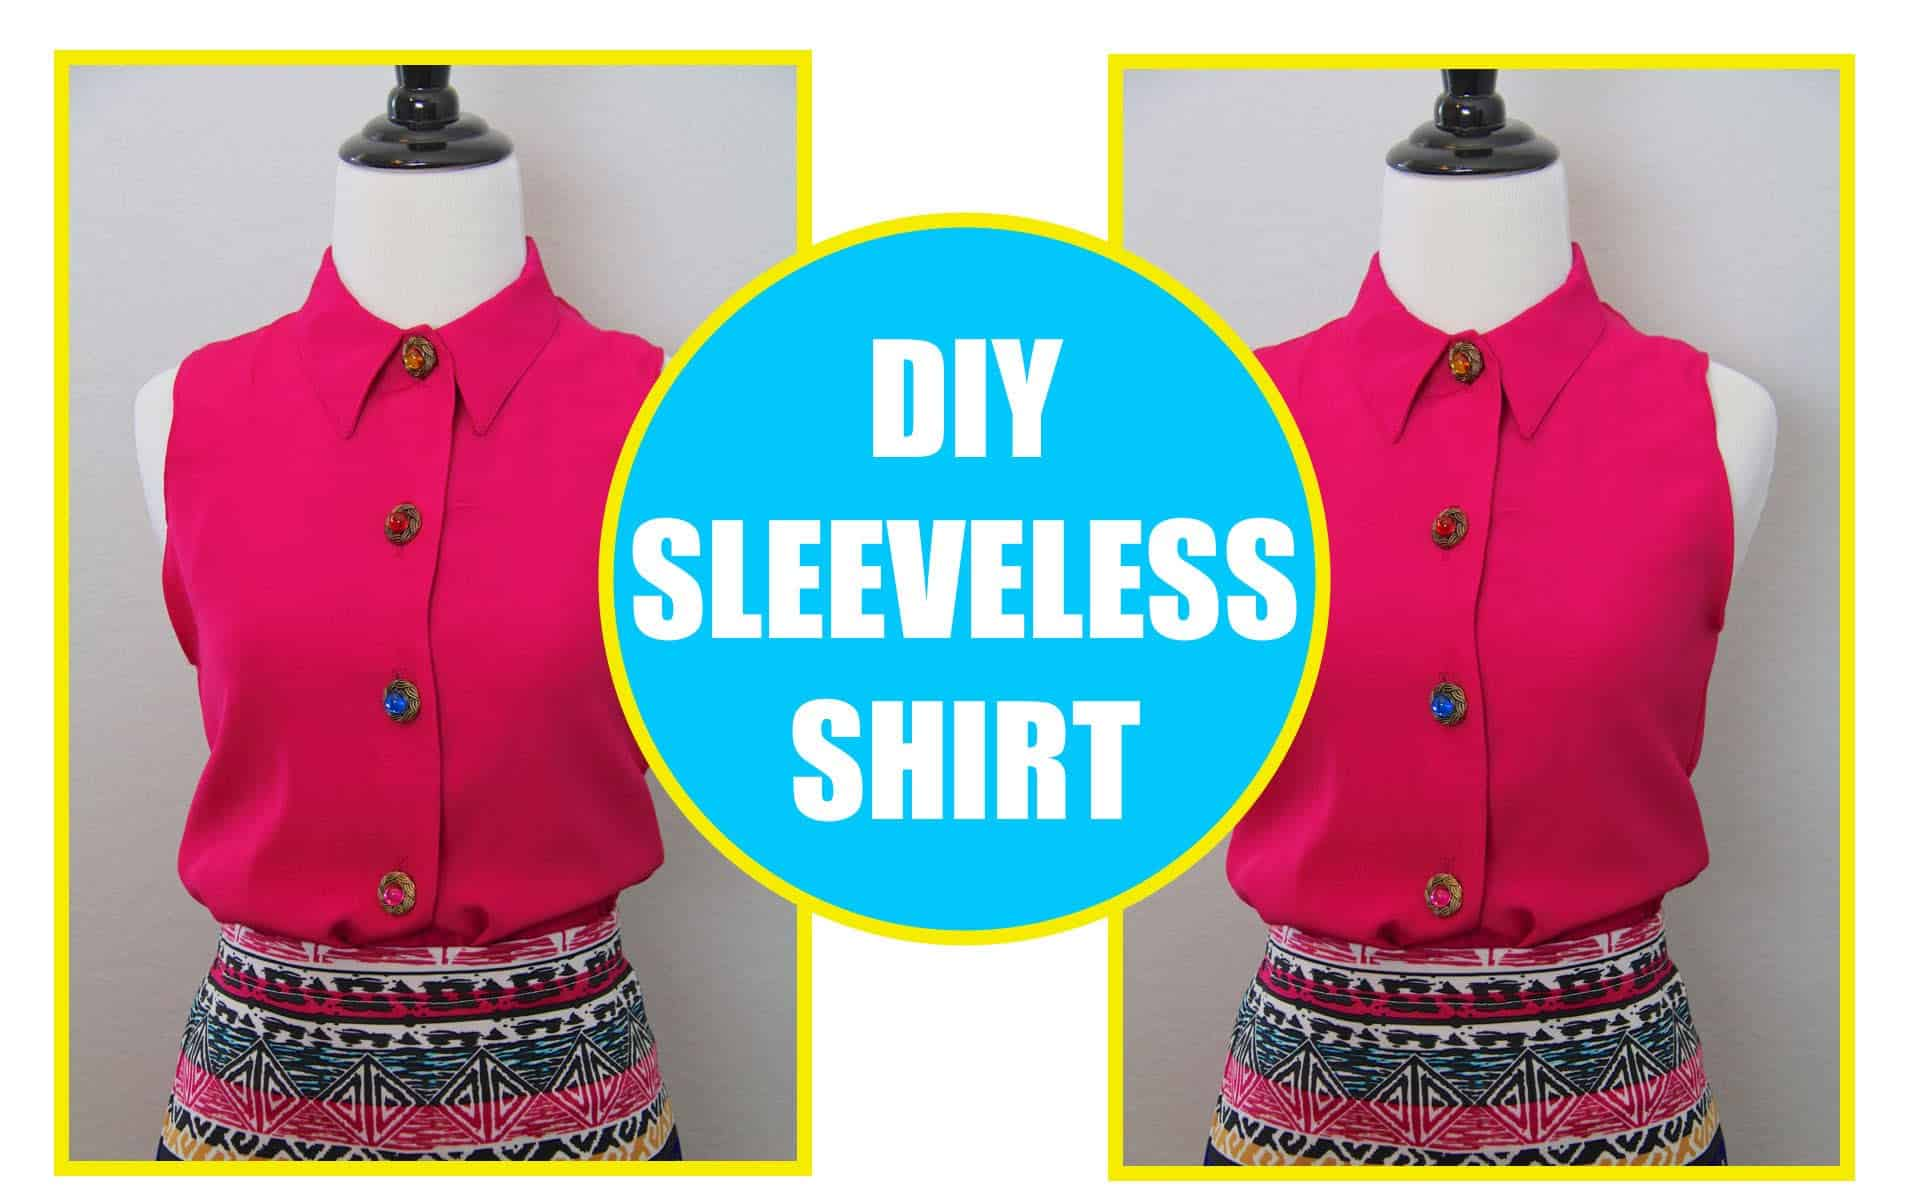 Long blouse to a sleeveless dress shirt